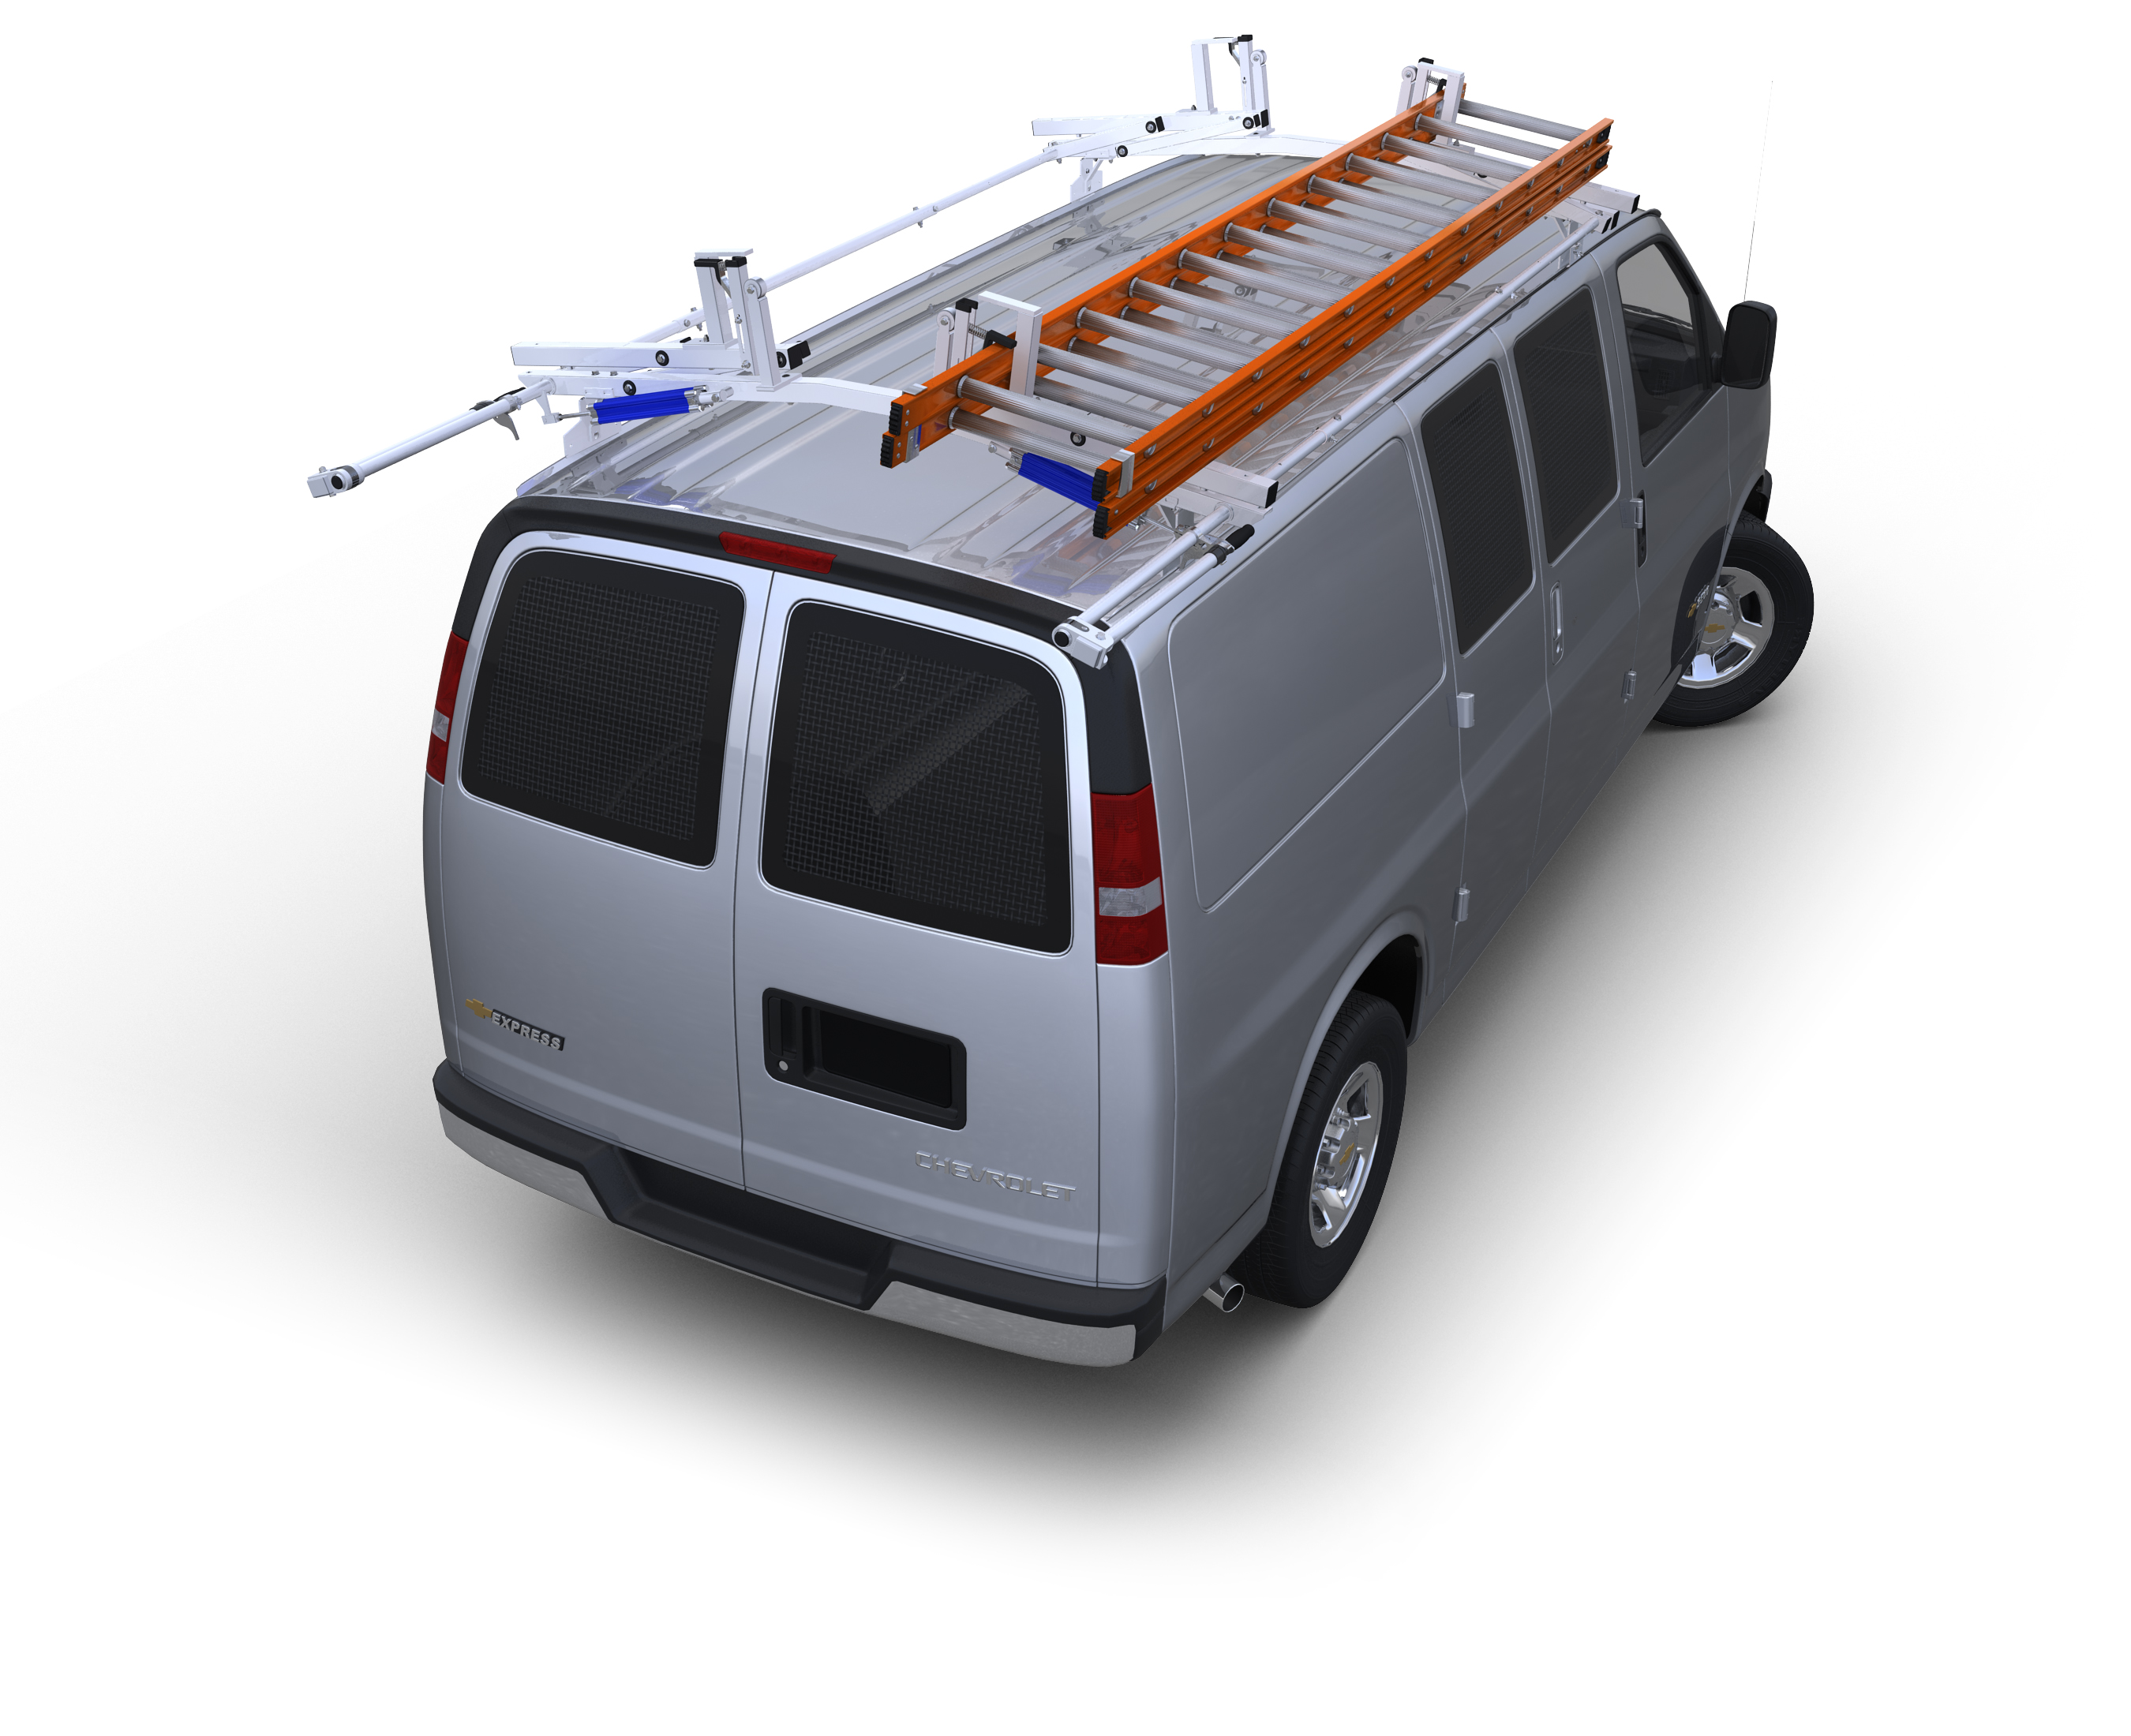 Chevy City Express Plumbing Van Package, Aluminum Shelving - SAVE $100!